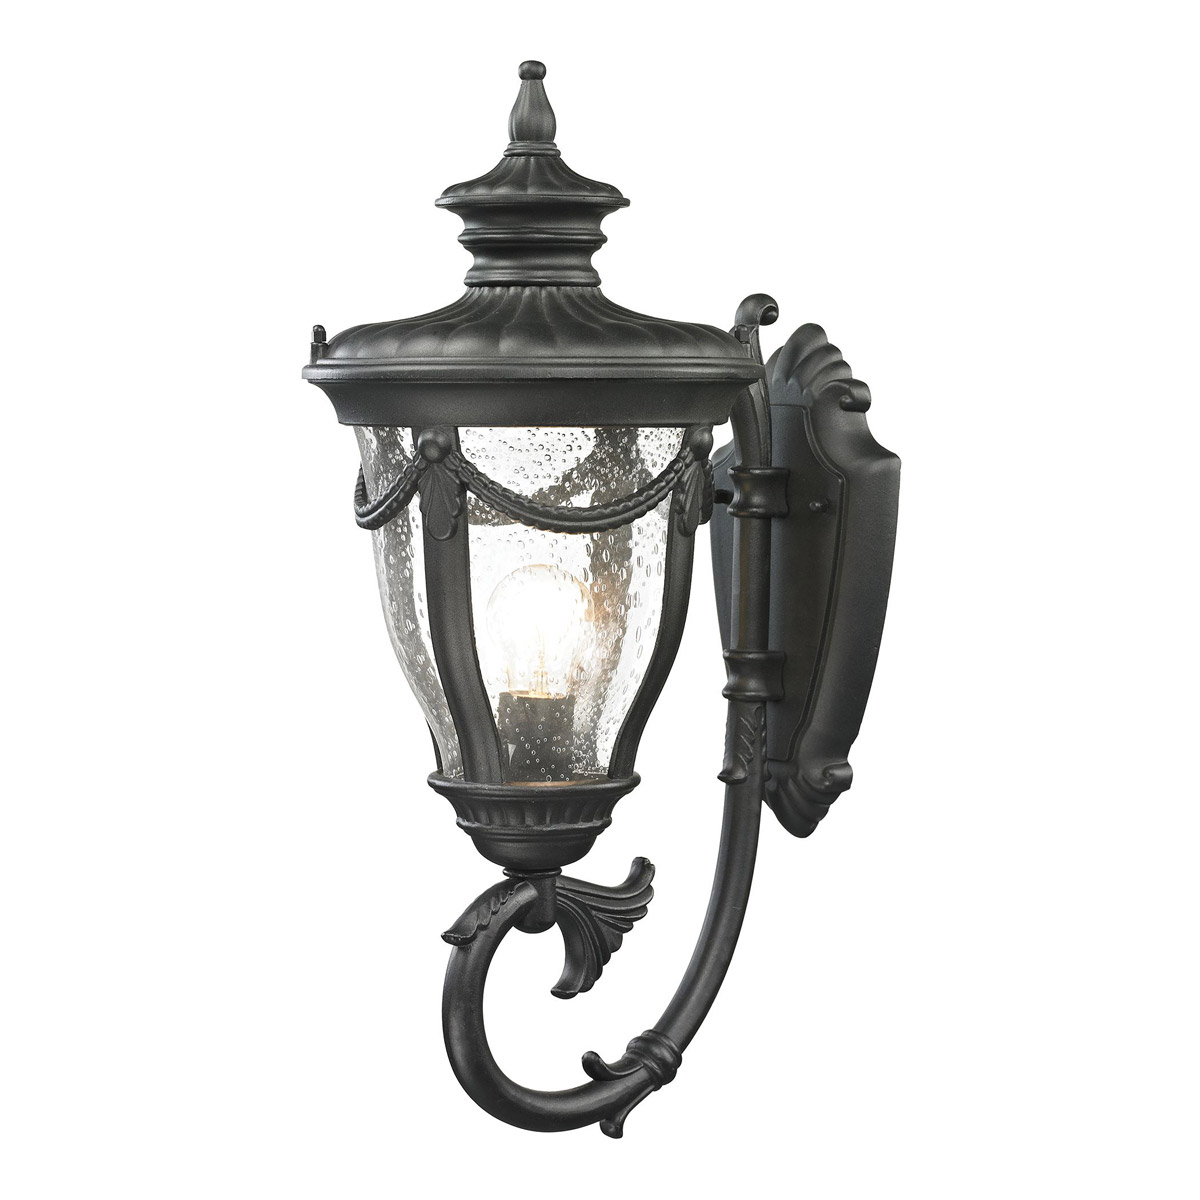 ELK Lighting Anise 45076 Modern Outdoor Lamps Brooklyn, New York - Accentuations Brand